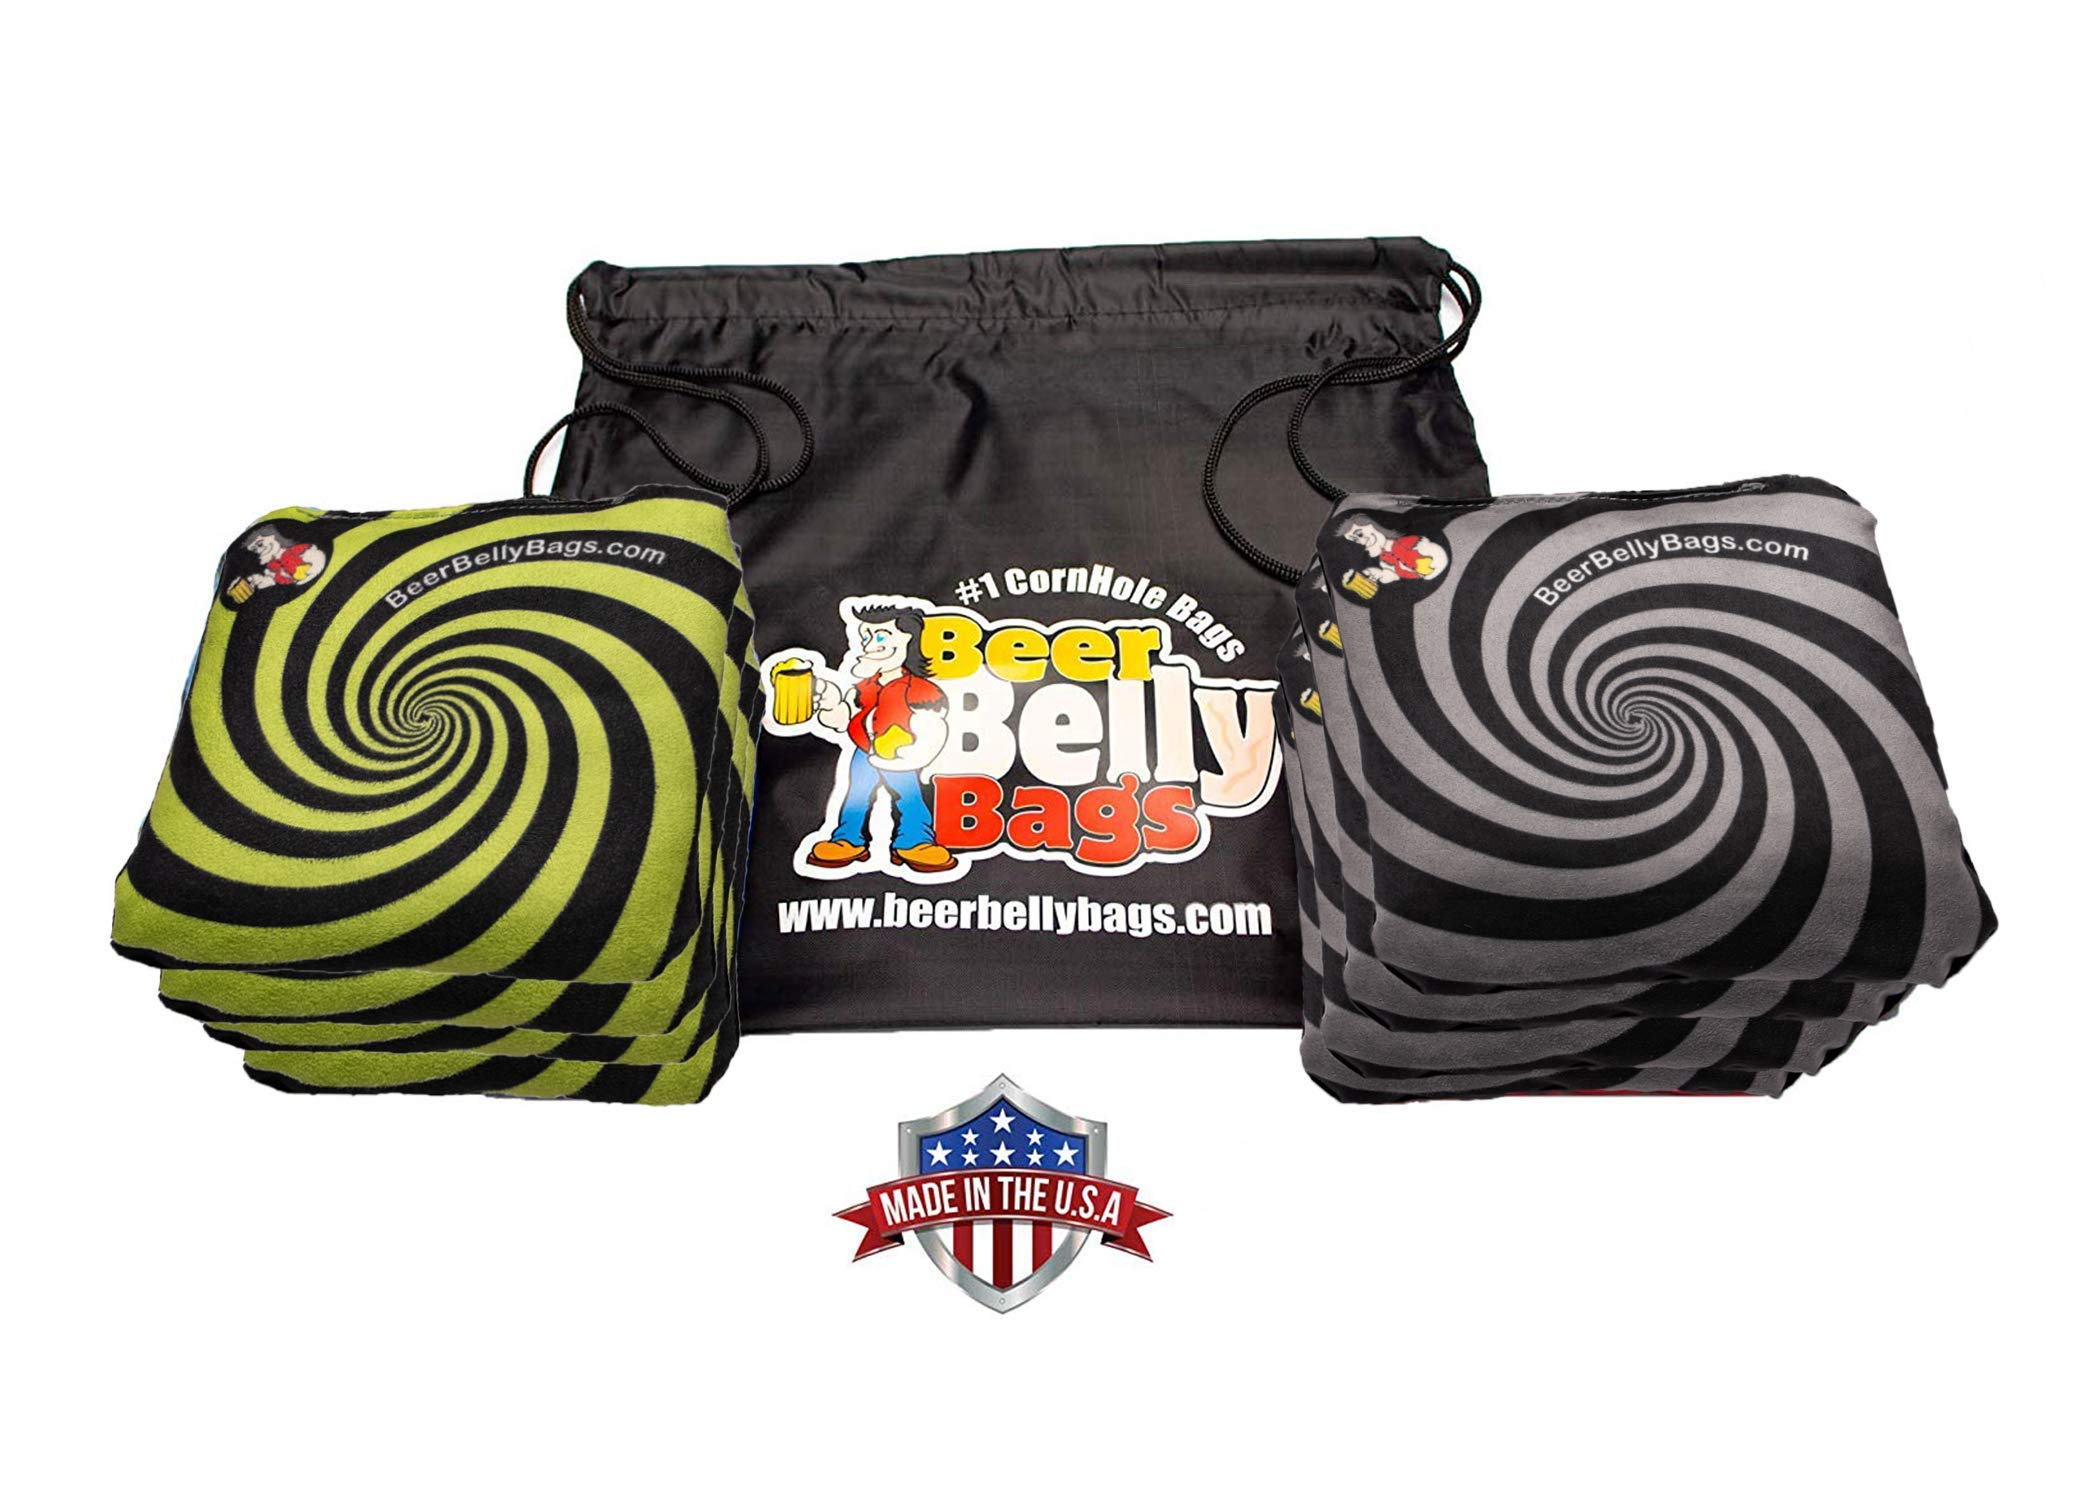 Beer Belly Bags Cornhole - Performance Series 8/pcs ACL Approved Resin Filled - Double Sided - Sticky Side | Slick Side (Black/Lime Spiral) by Beer Belly Bags